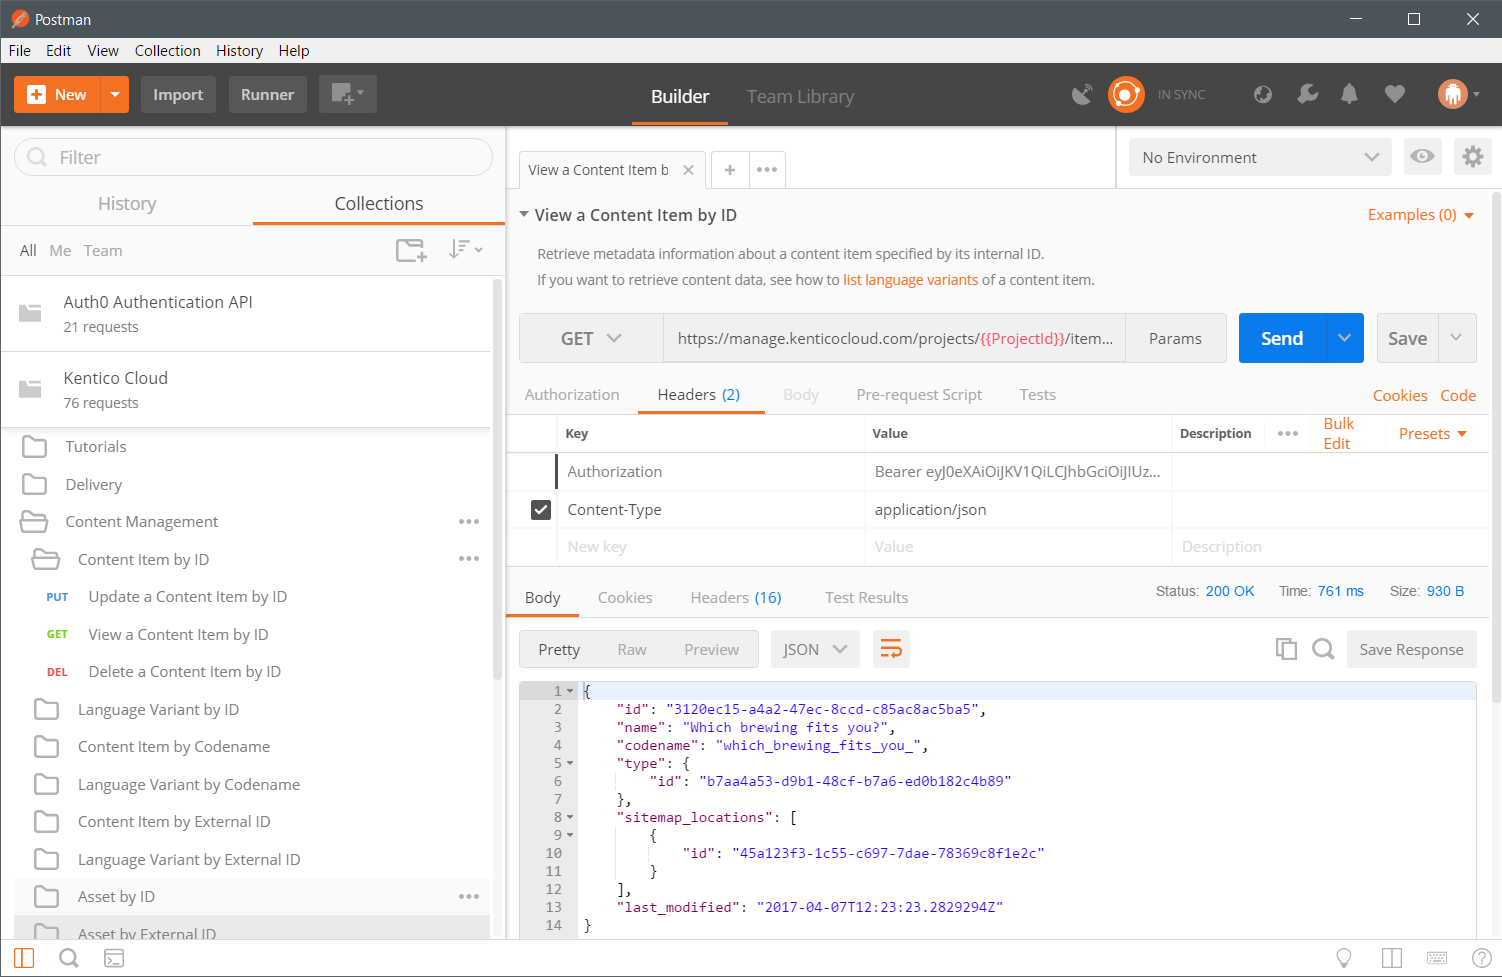 Using the APIs with our Postman collection